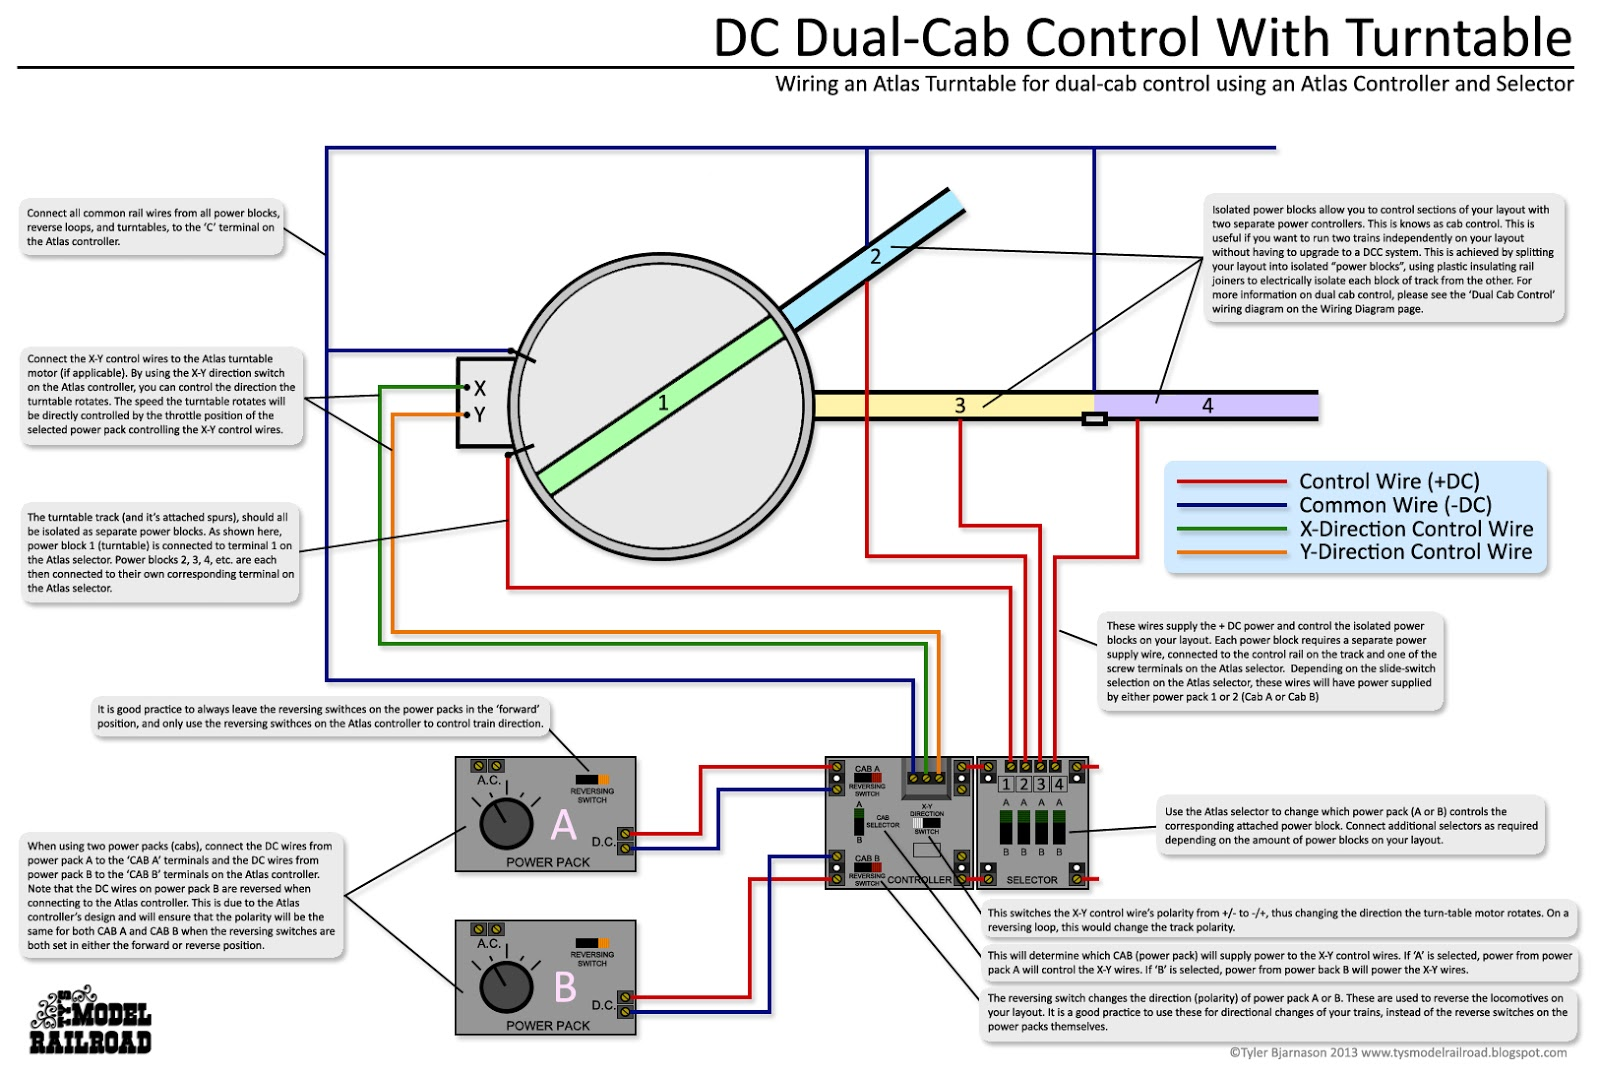 How to use dual cab control to power and operate a turntable and turntable  motor using